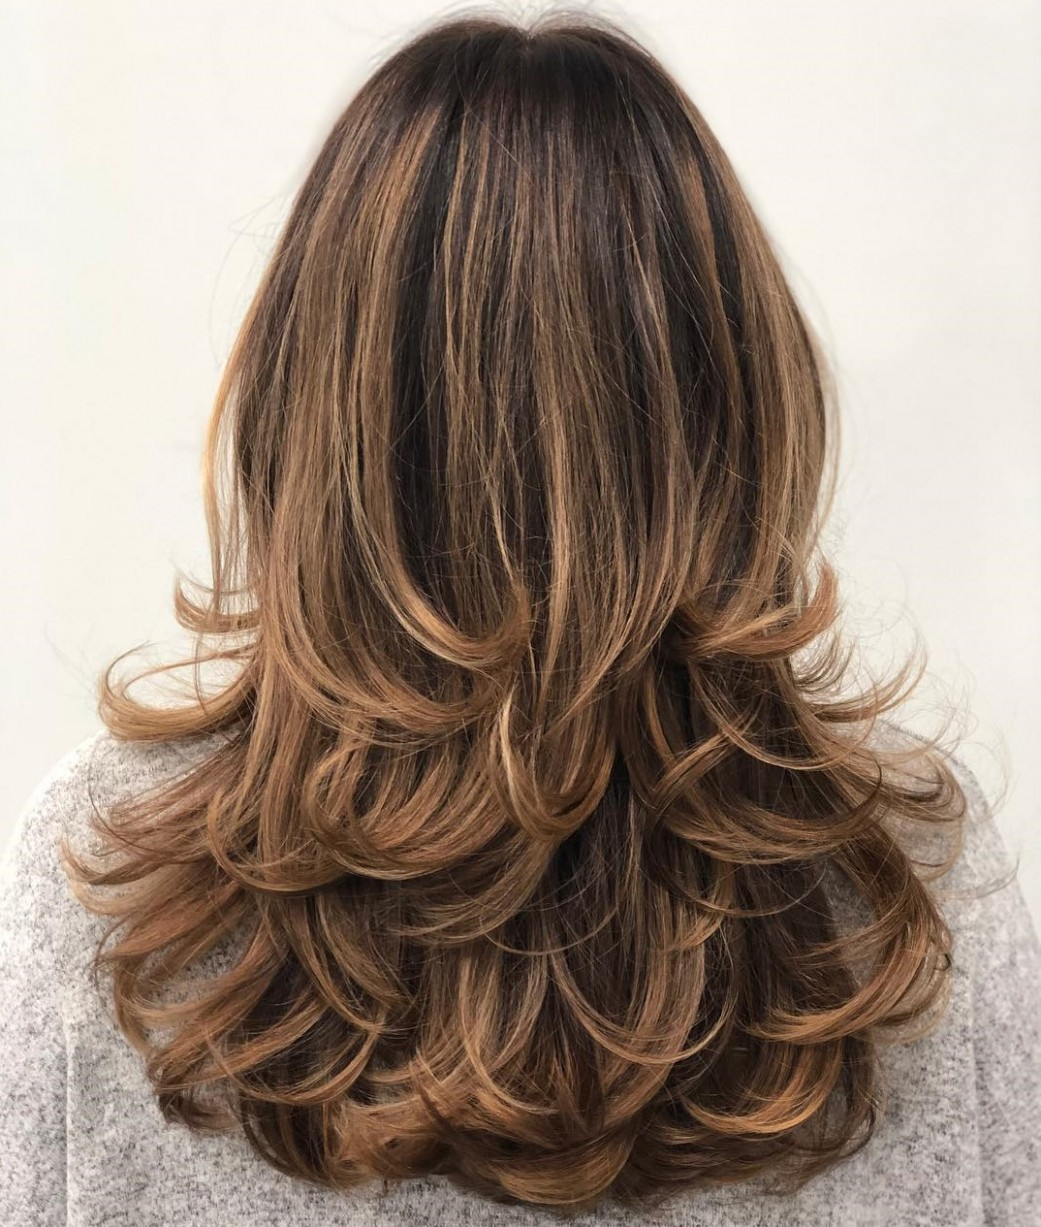 8 NEW Long Hairstyles with Layers for 8 - Hair Adviser